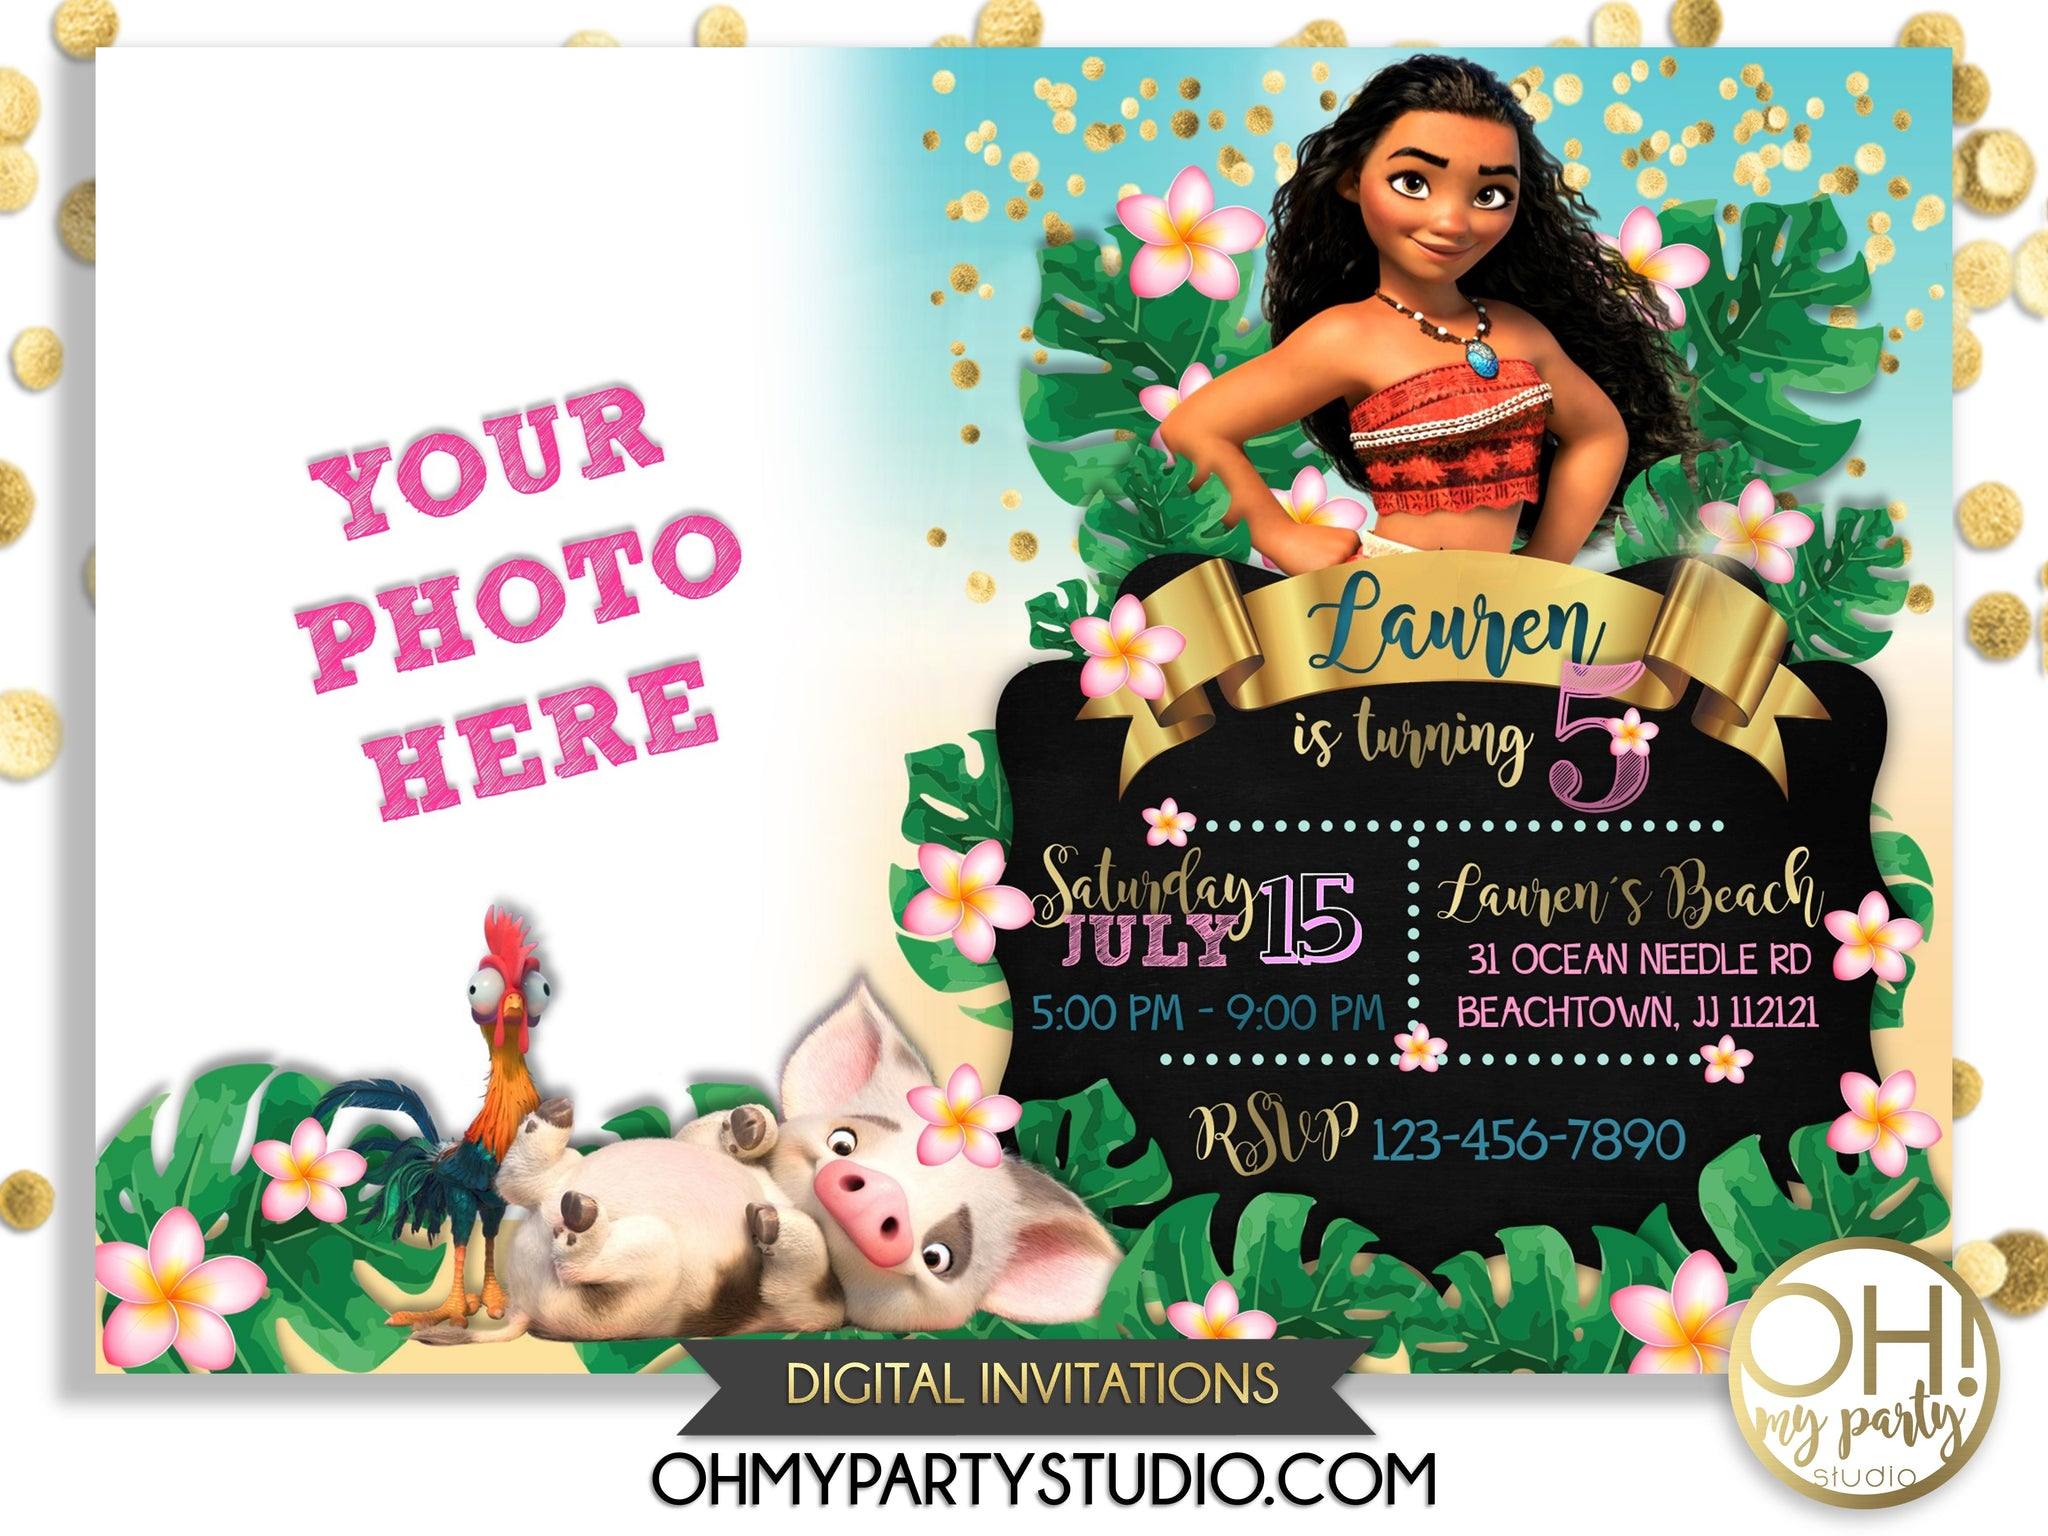 Moana Invitation, moana invitations, moana printable, moana invitation digital, moana party, moana birthday, moana birthday party, moana invitations